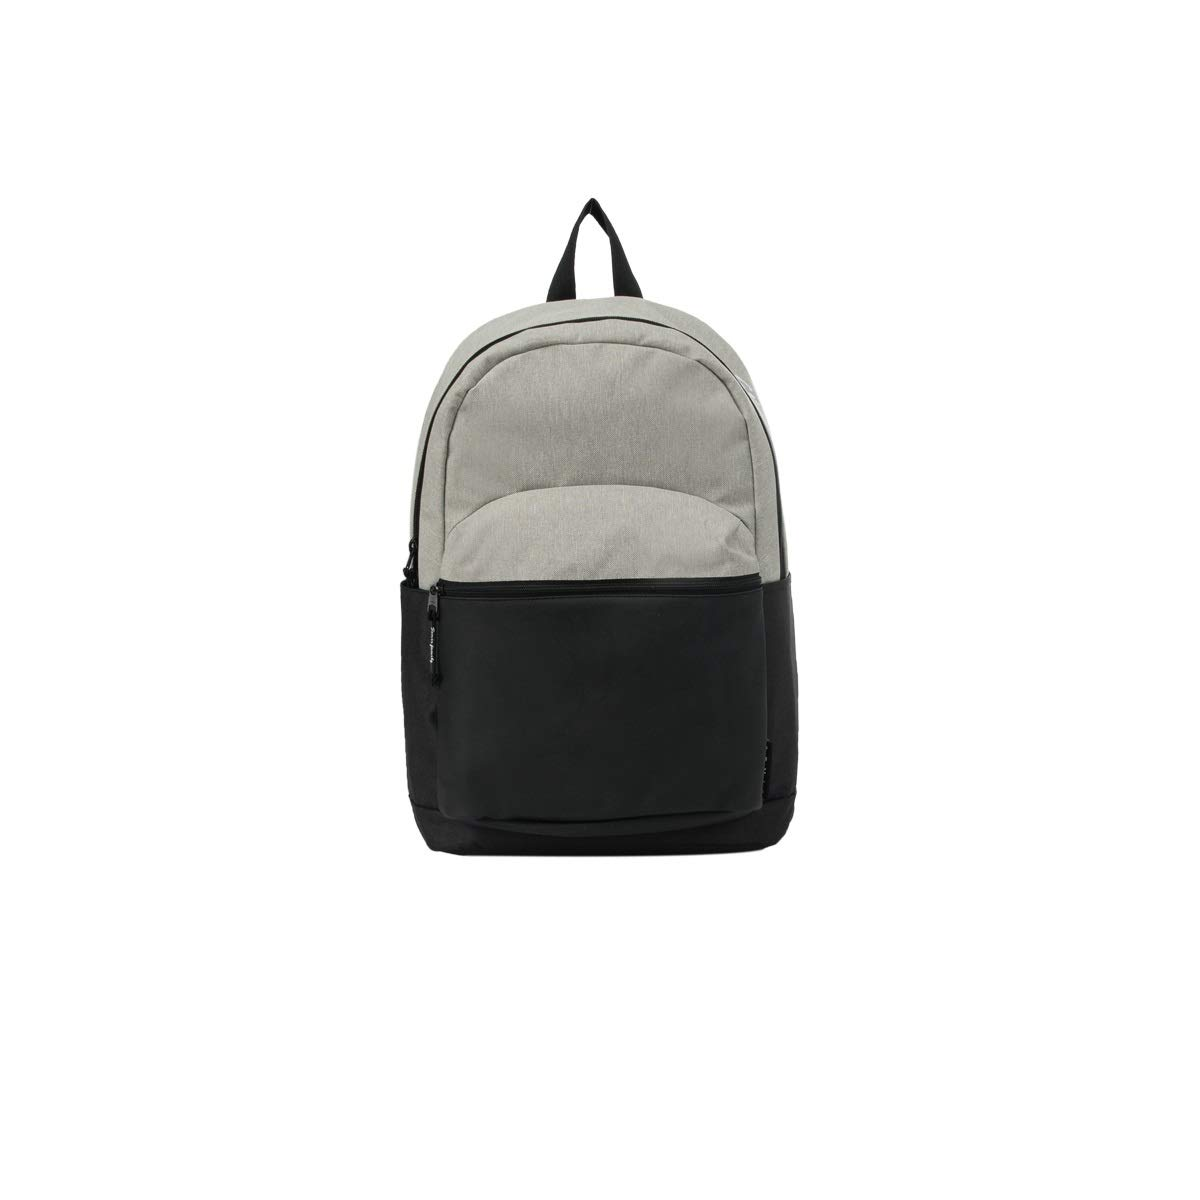 TONGBOSHI Backpack Male, Simple Casual Travel Bag Female, Business Function Computer Bag Student Bag Female Backpack (Color : 2)